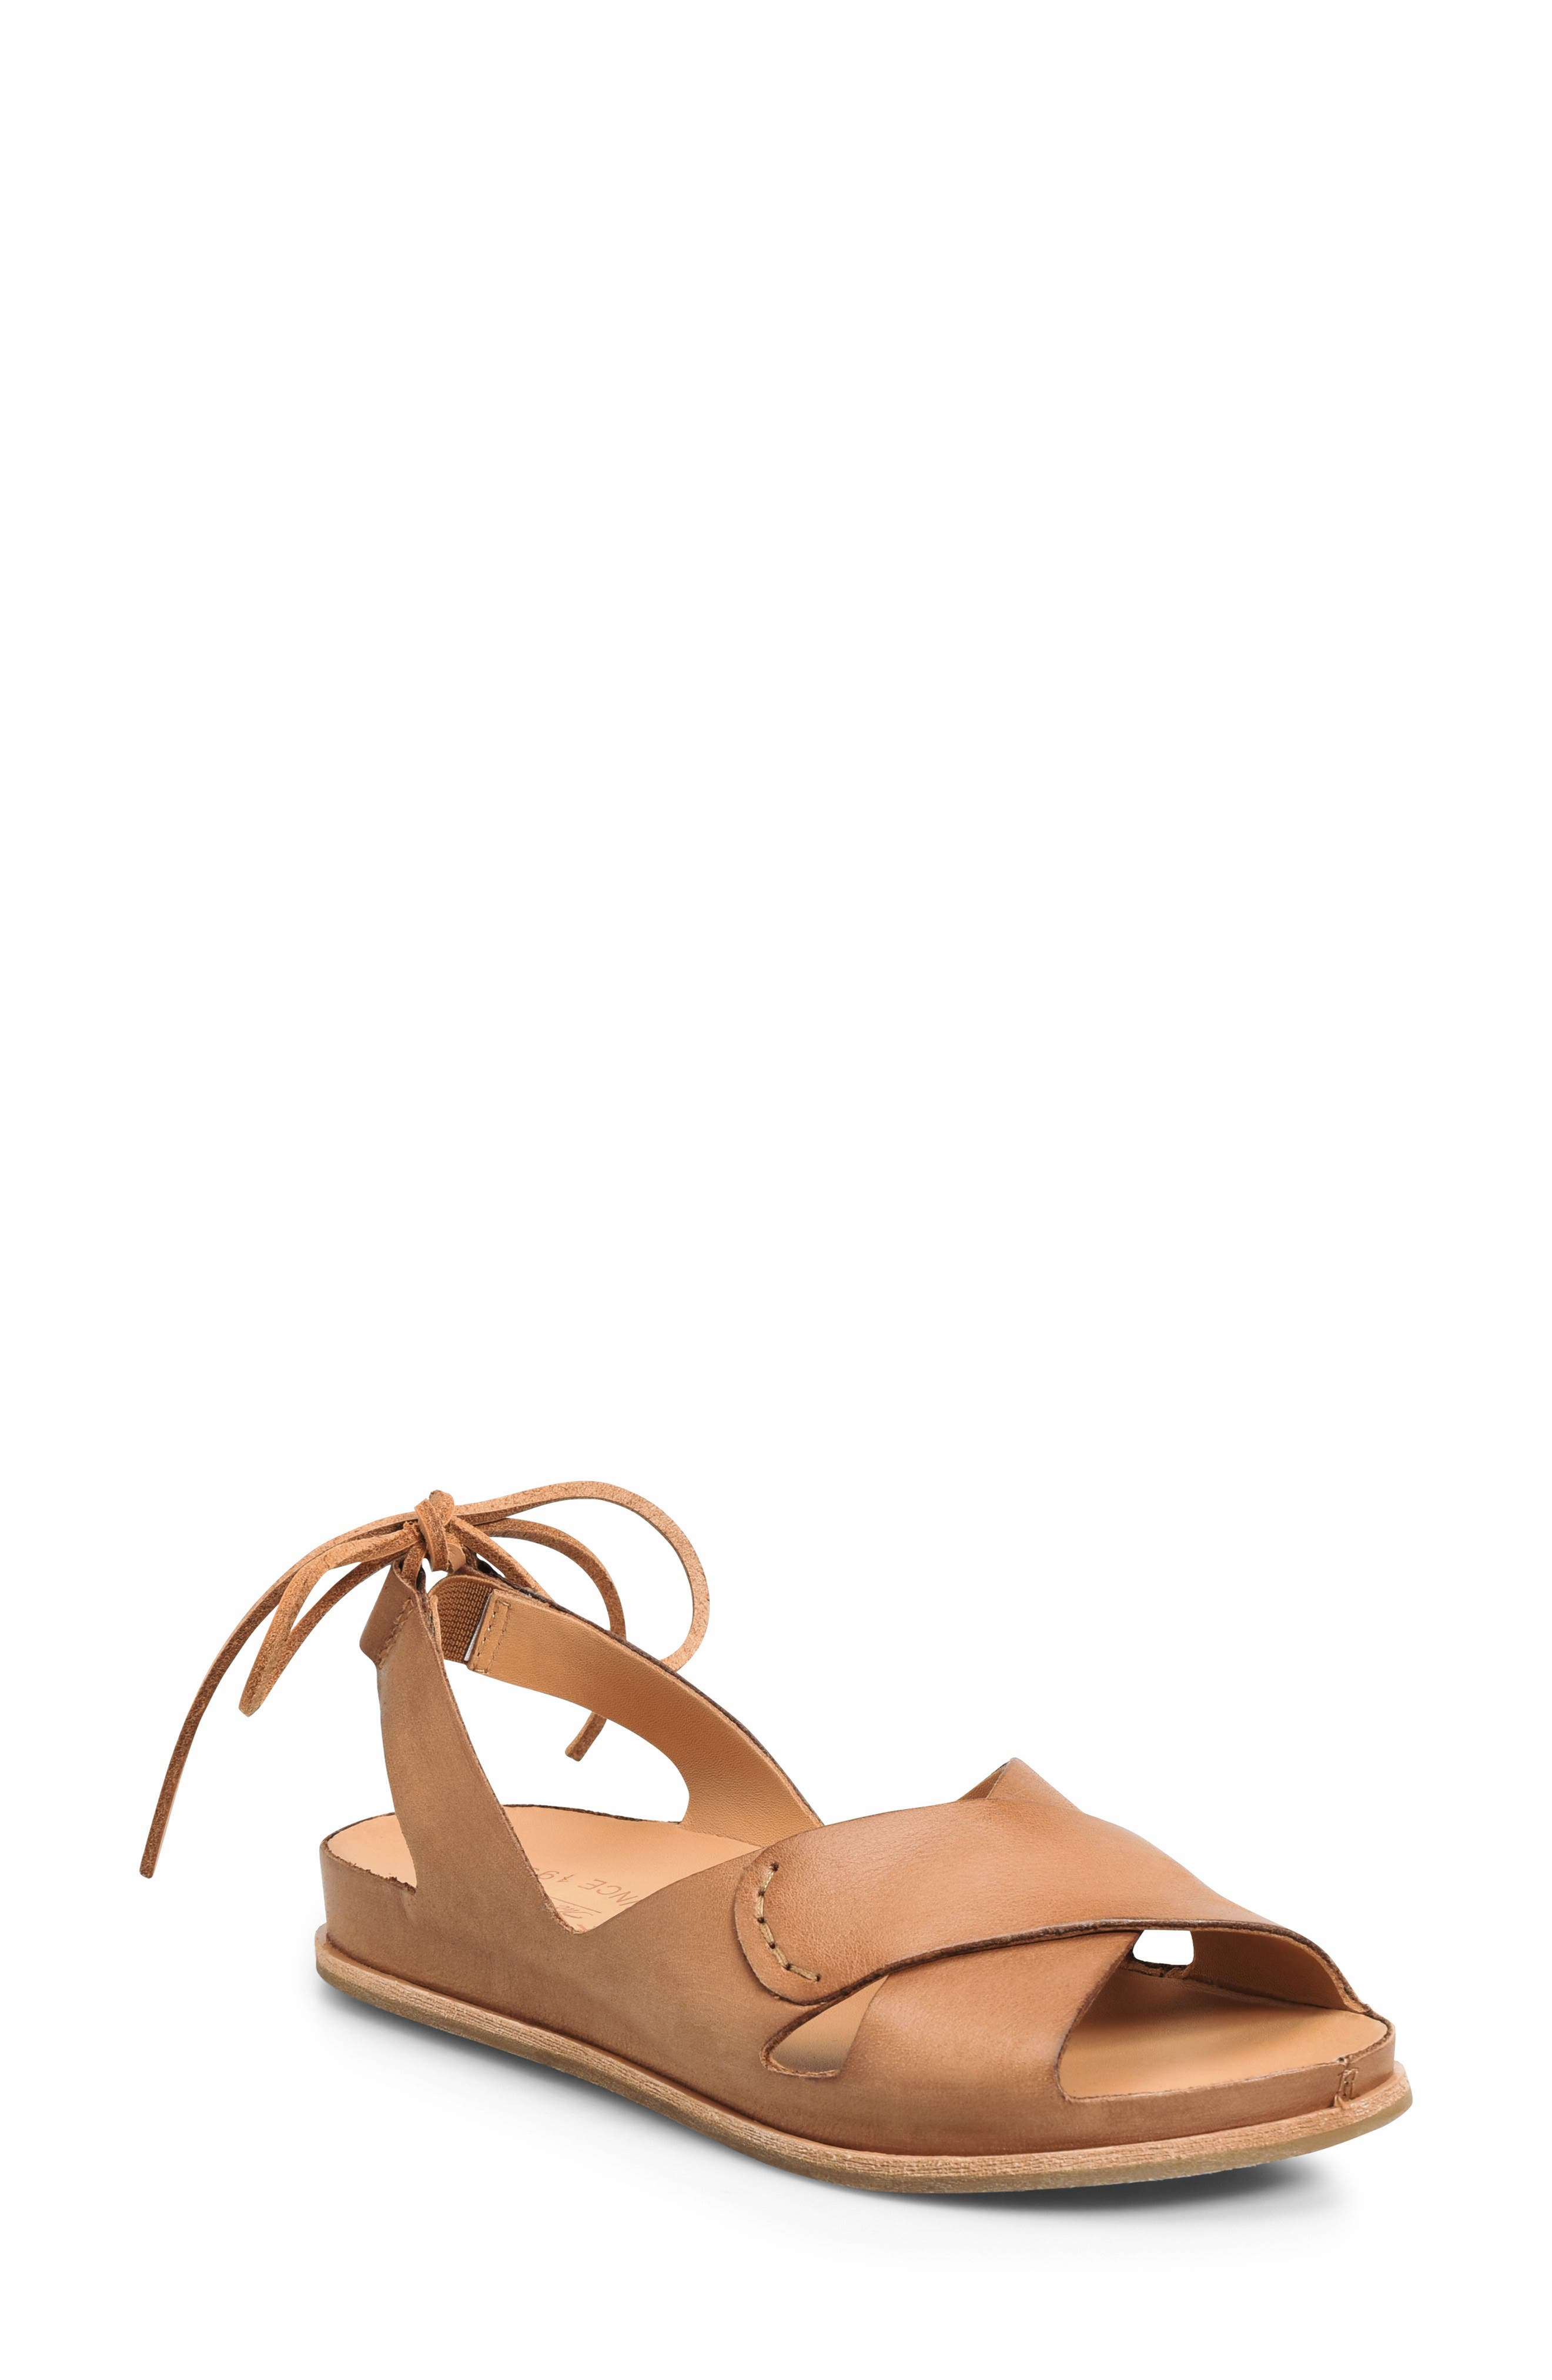 ,                             Aaron Sandal,                             Main thumbnail 1, color,                             BROWN LEATHER